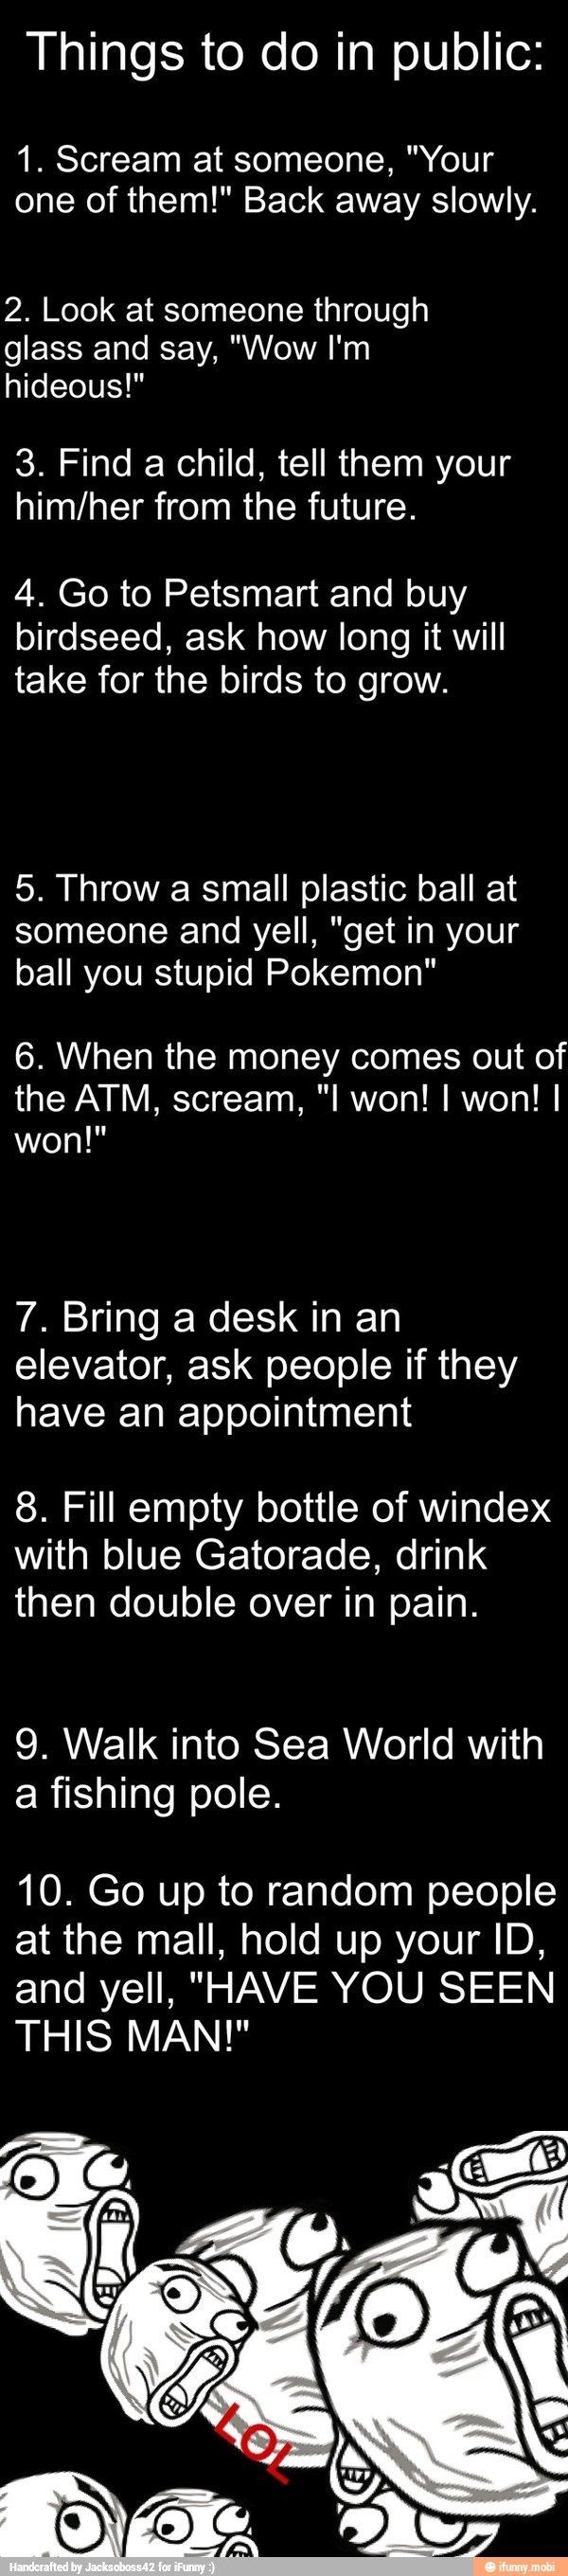 Things to do before u die well one of those things cause I dout u could get through the hole list without the cops being involved.